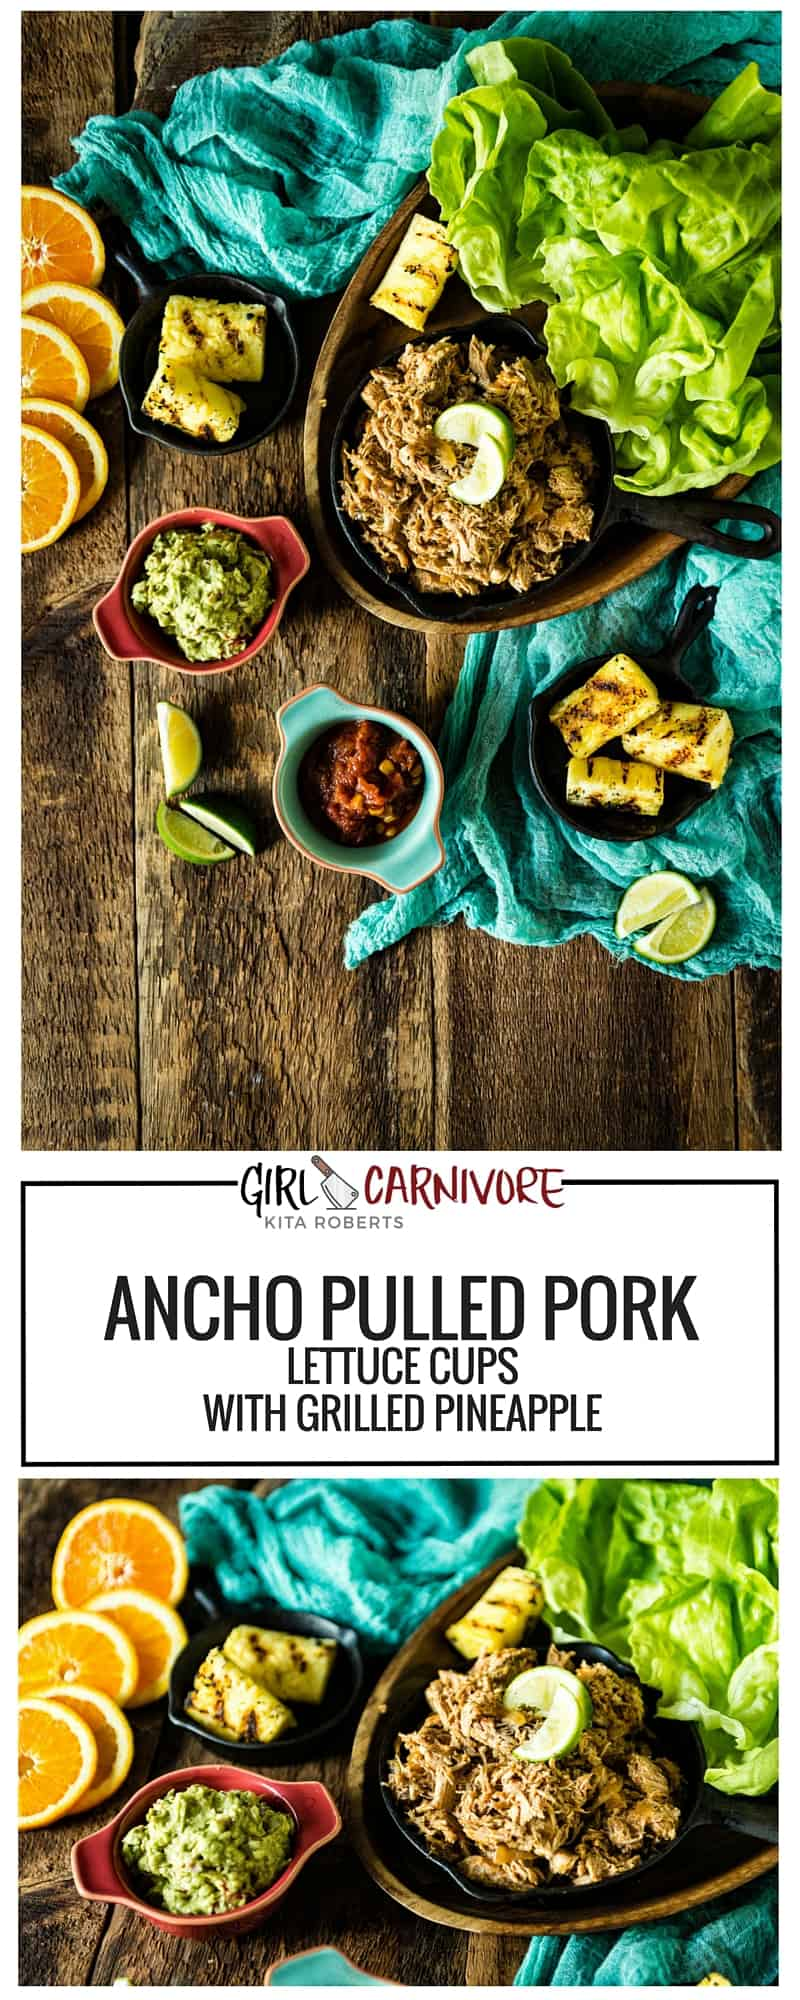 Slow Cooker Spicy Ancho Pulled Pork Lettuce Cups with Grilled Pineapple | GirlCarnivore.com